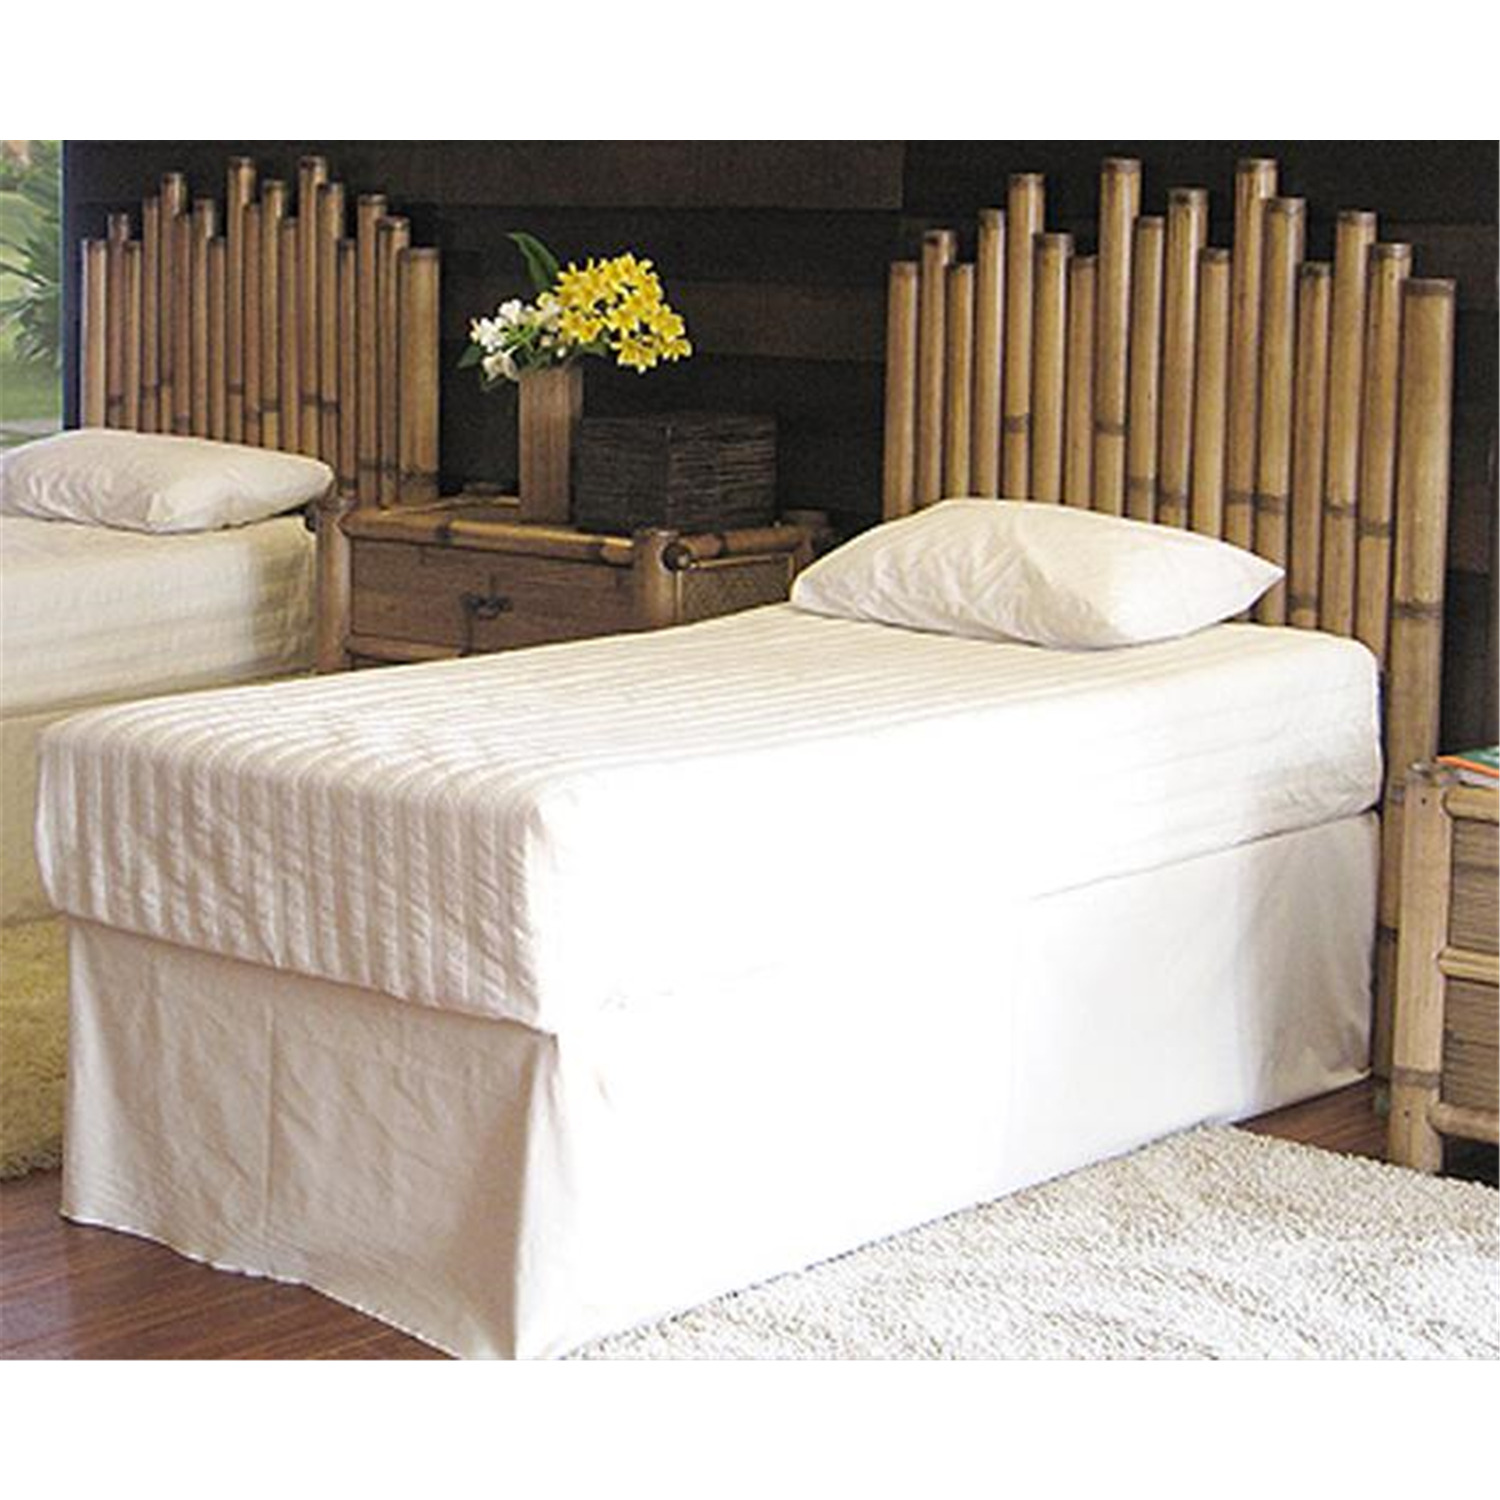 hospitality rattan havana bamboo bedroom set by oj commerce 1